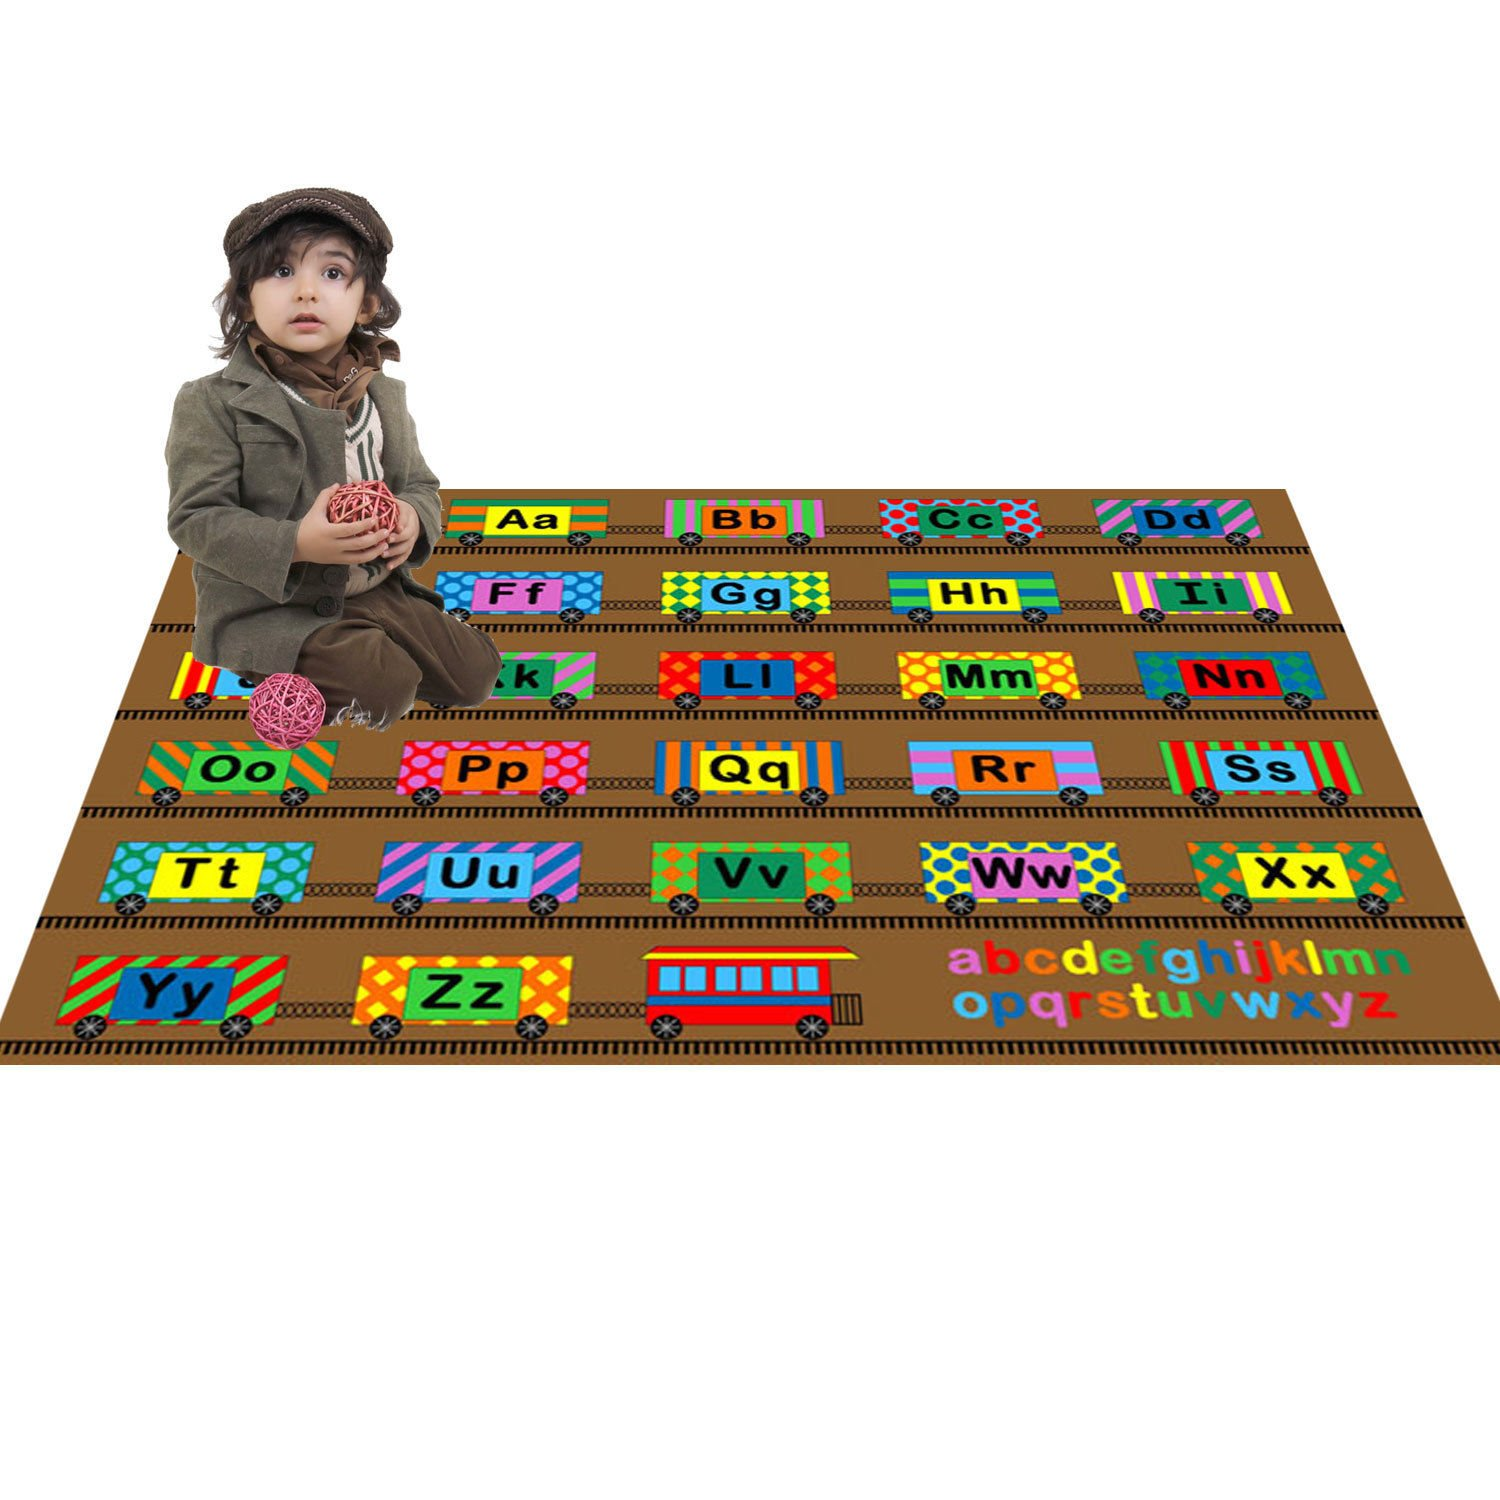 Amazon.com: Large Classroom Rugs for Kids ABC Train Fun Area Rug 4ft x 6ft  New Design # 4 Manufacturer's Suggested Retail Price $149.99: Kitchen &  Dining